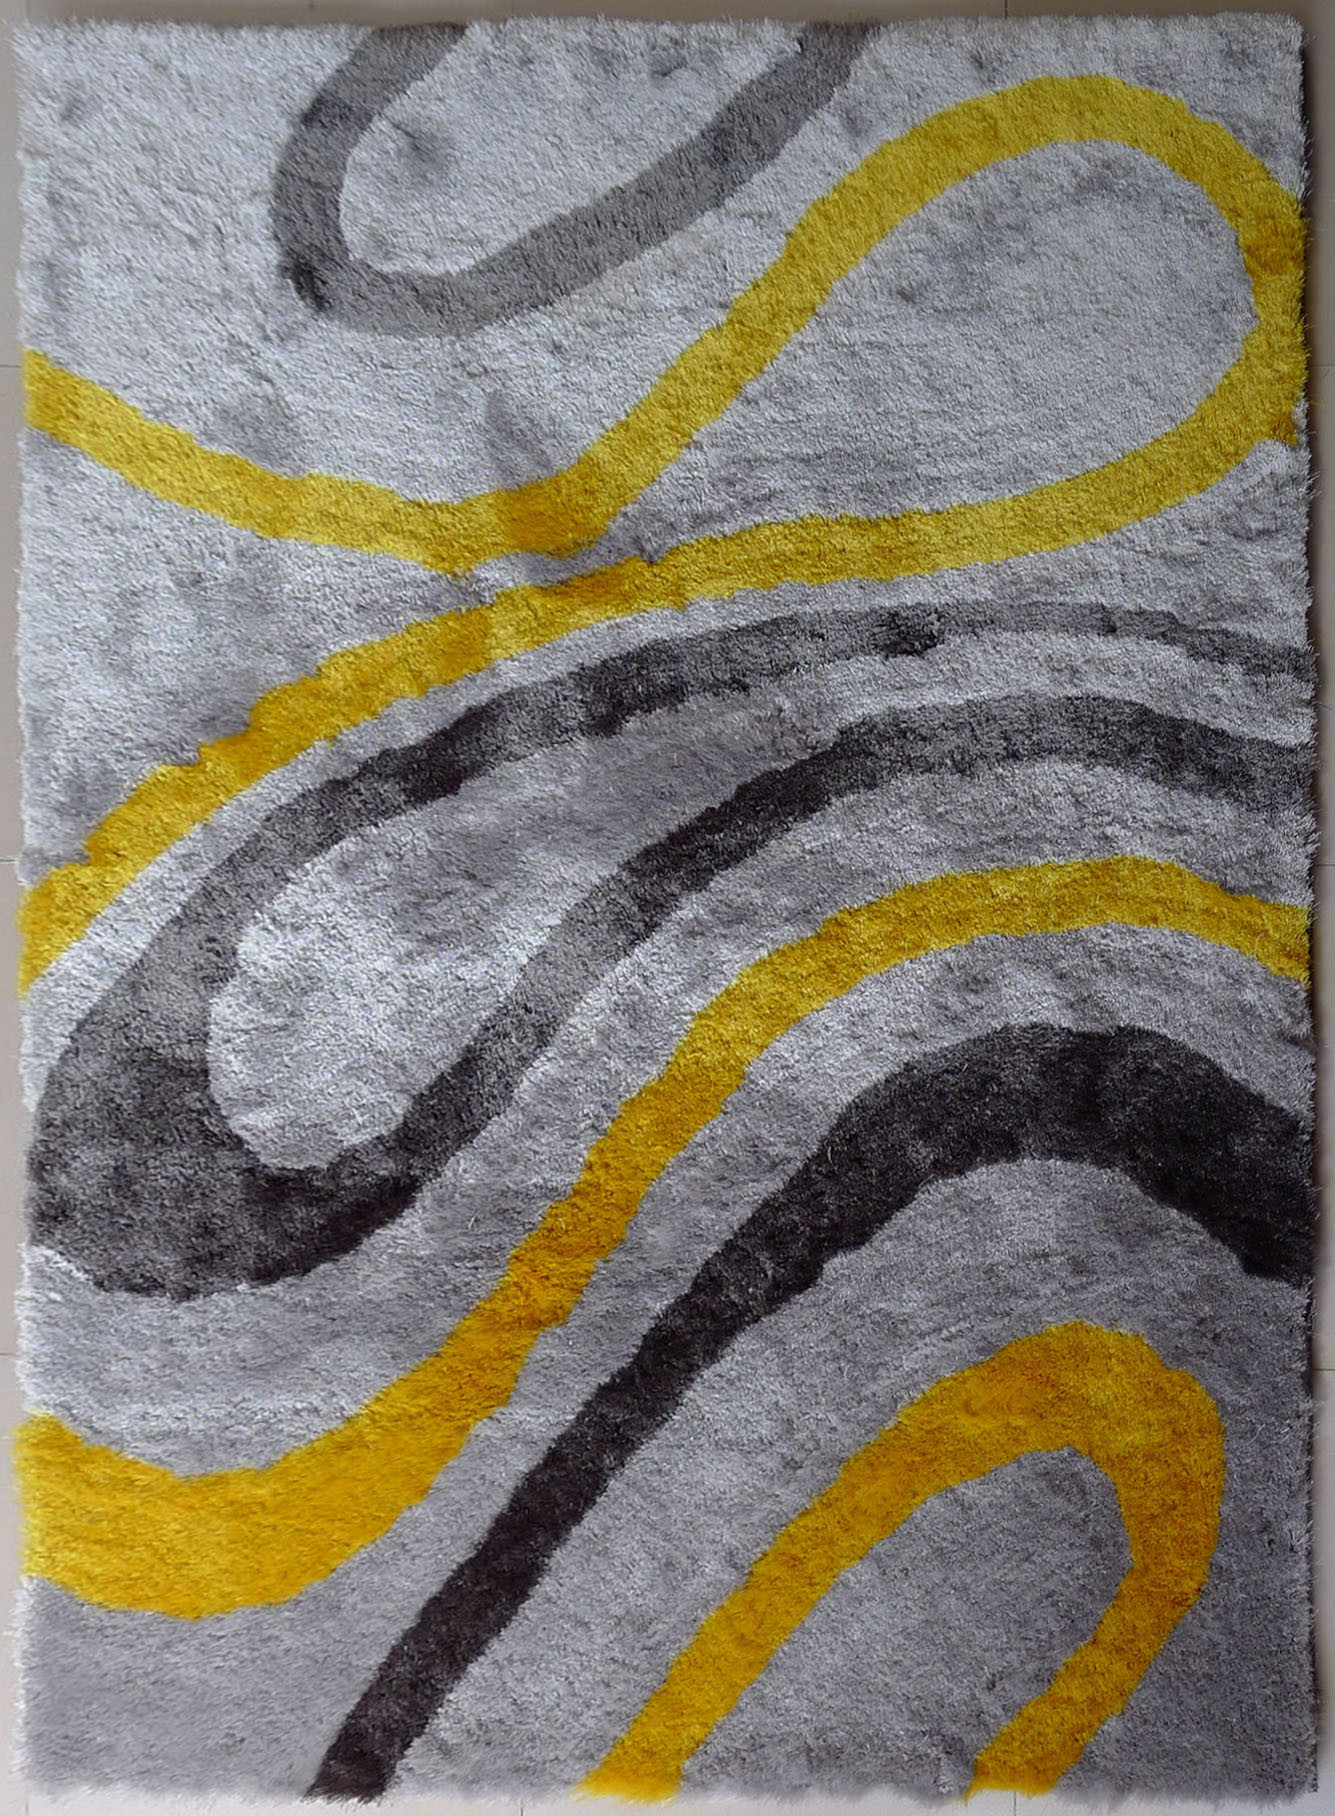 Compact Yellow Shaggy Area Rug with Grey 2u0027 x 3u0027 ft. yellow grey area rug